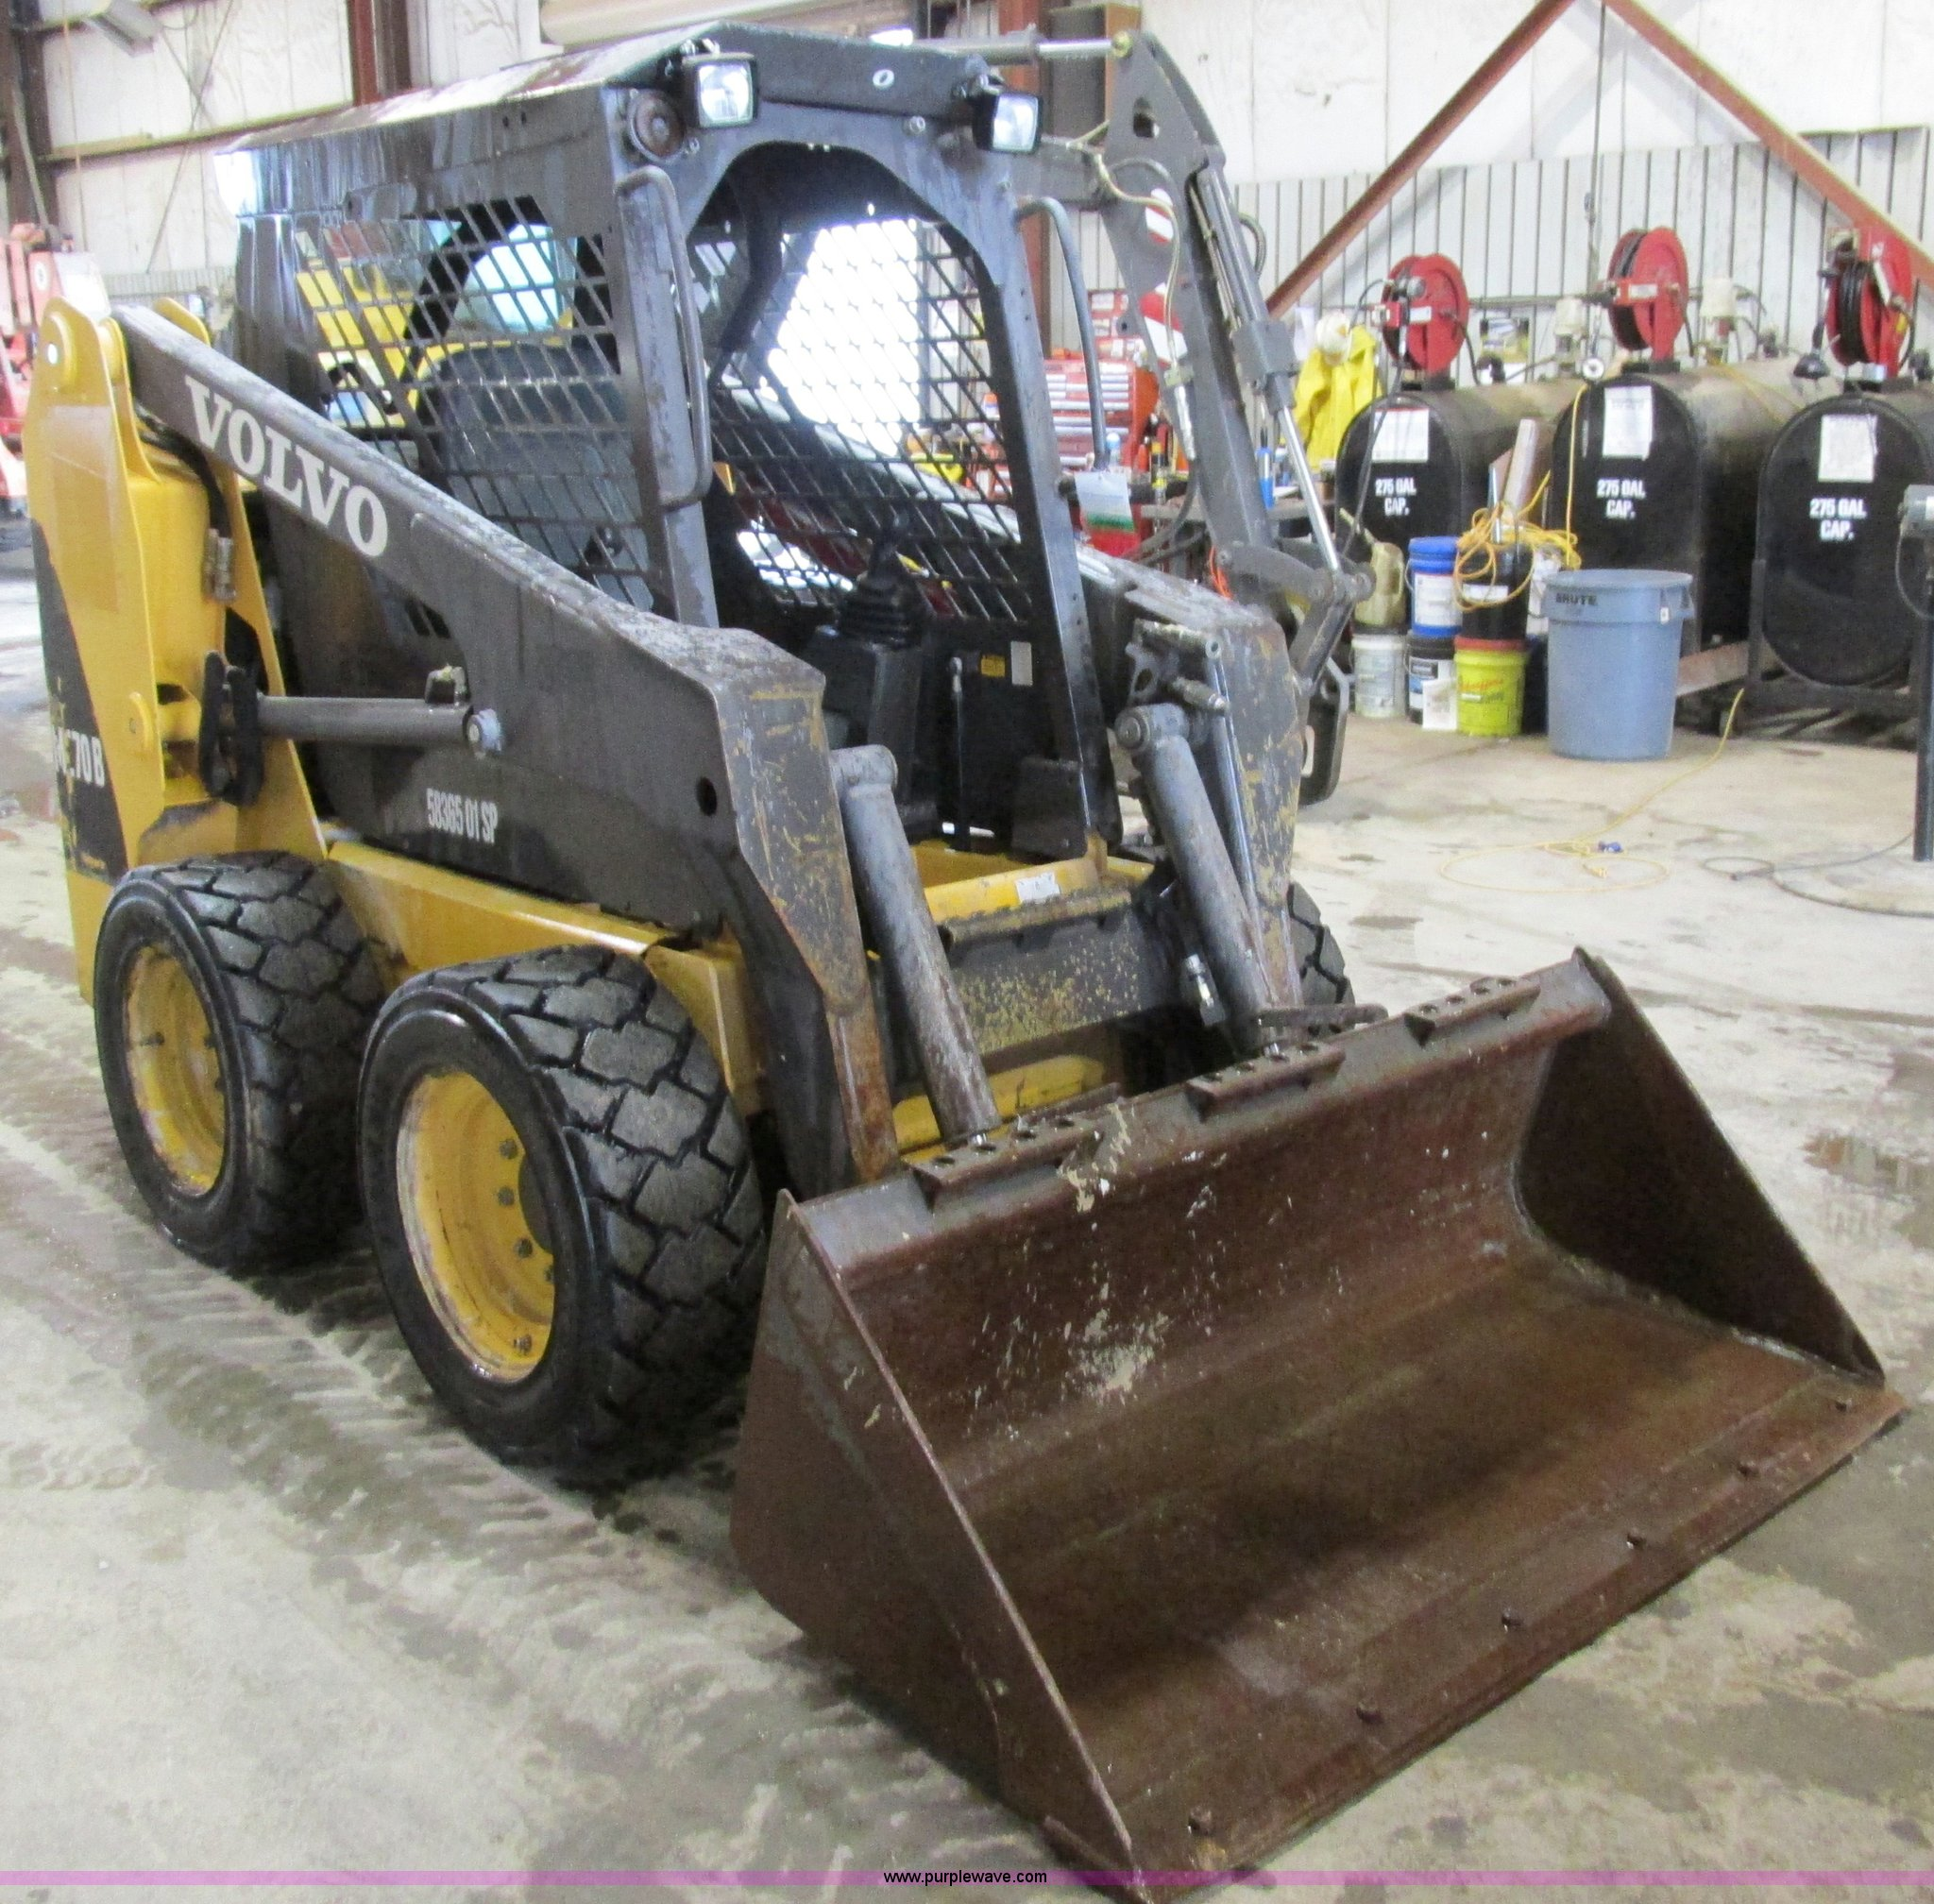 AW9918 image for item AW9918 Volvo MC70 skid steer